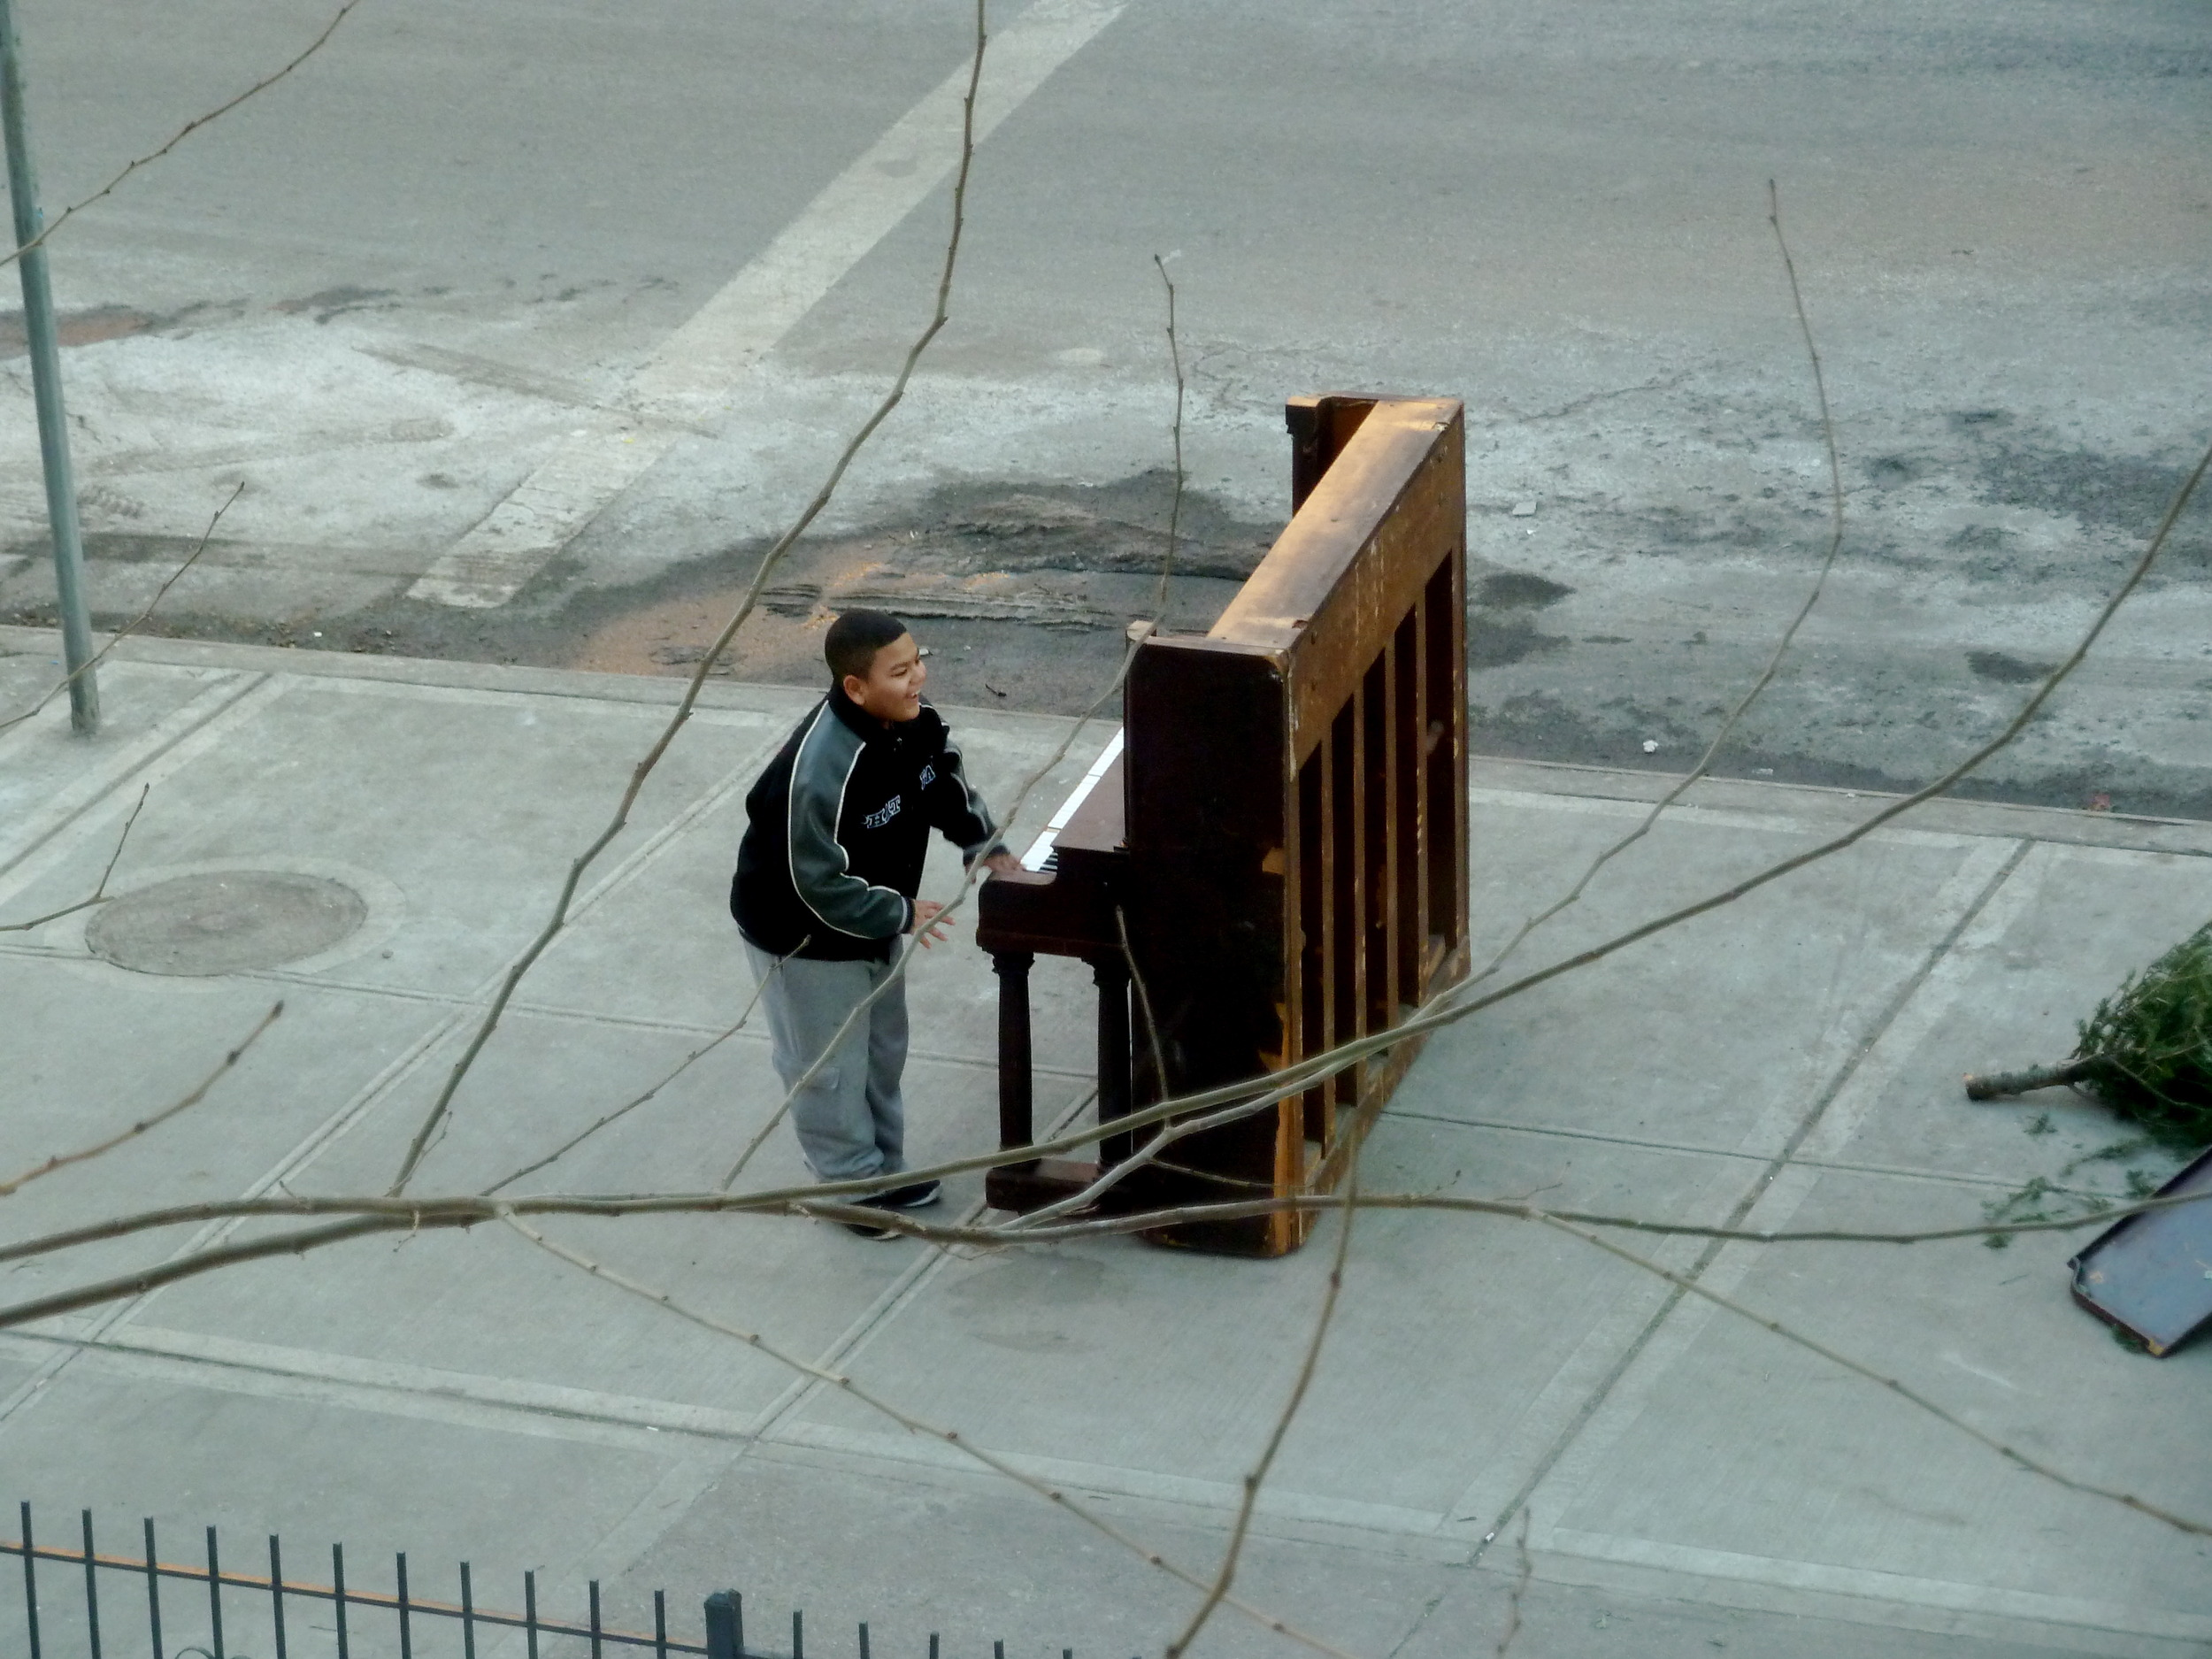 Solo, Piano – NYC is a 5-minute film of the last 24 hours of a once-wanted piano.